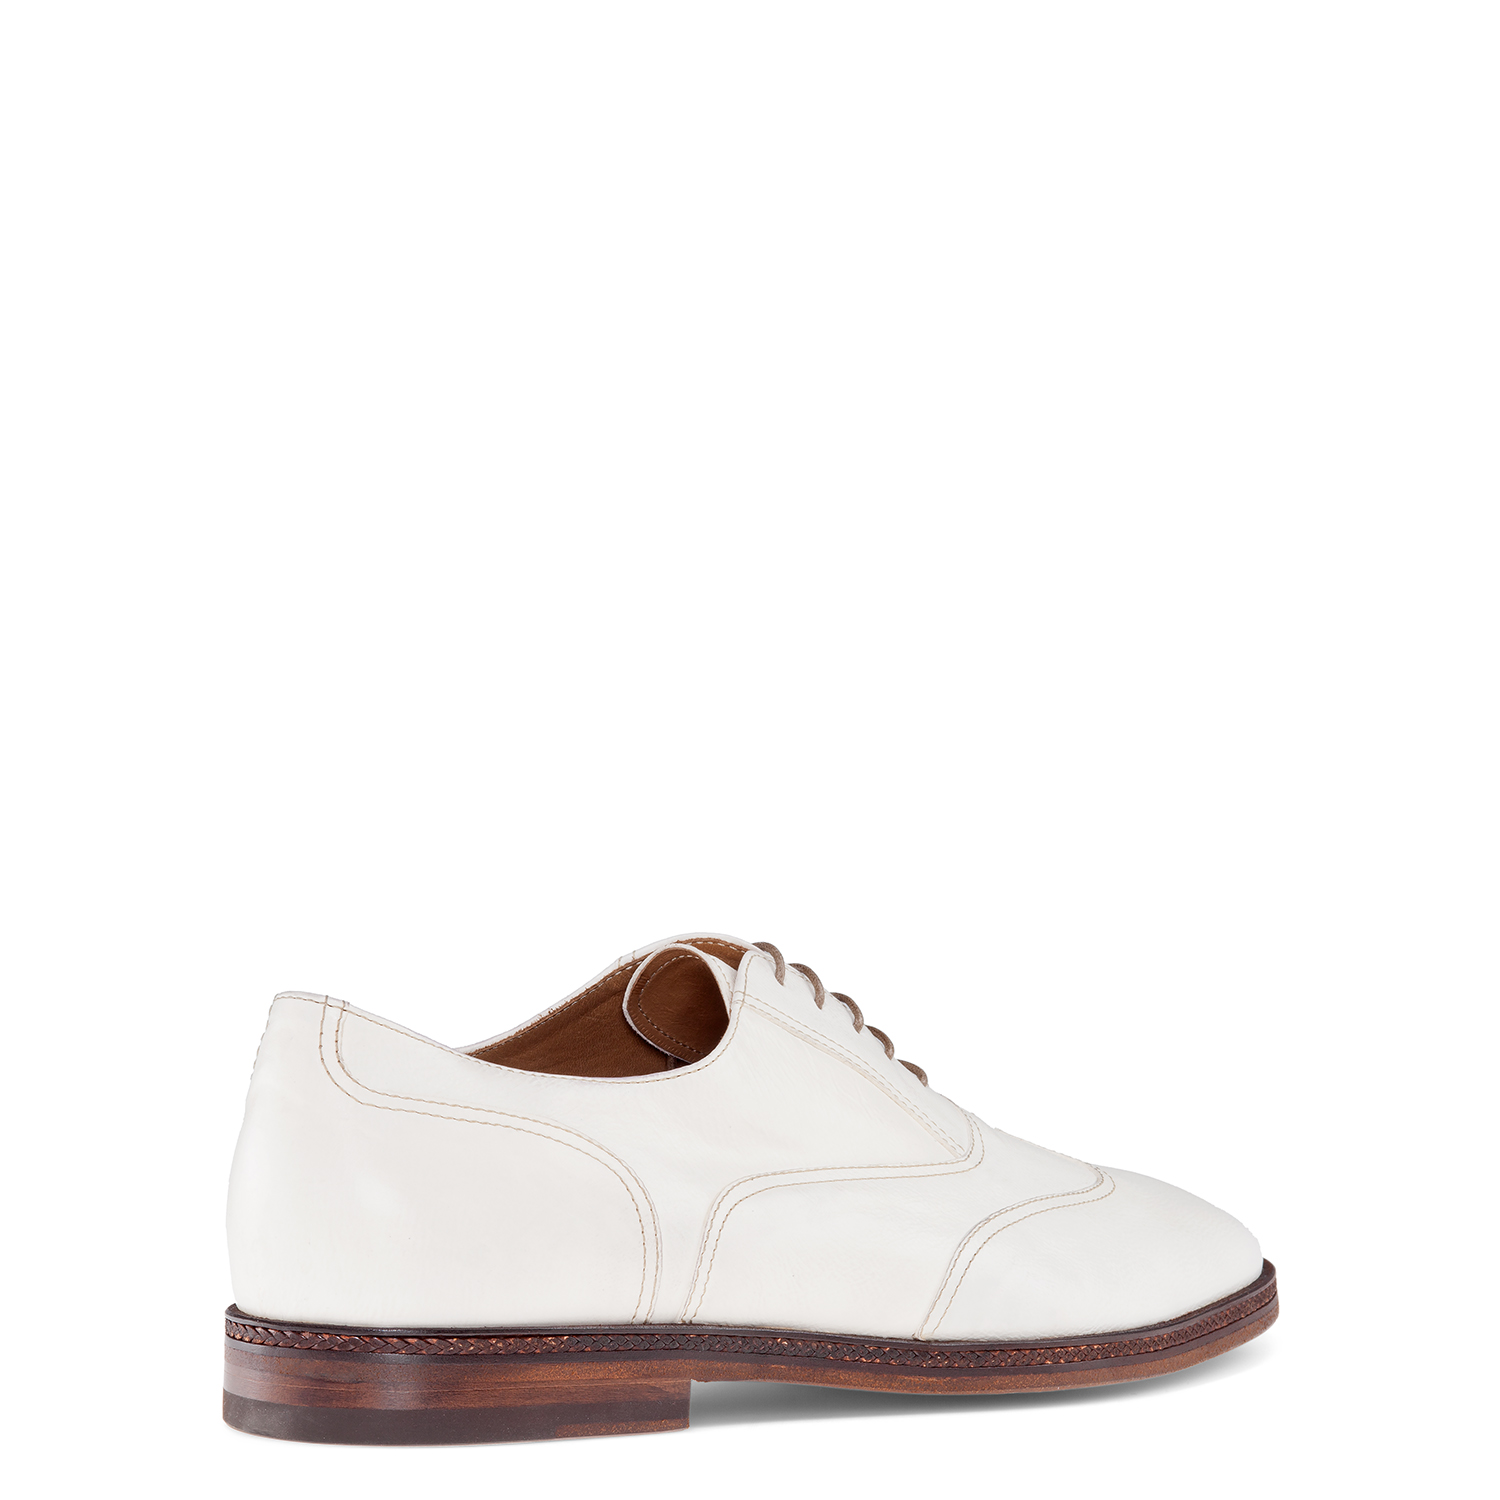 Men's shoes PAZOLINI SF-ZEE2-17